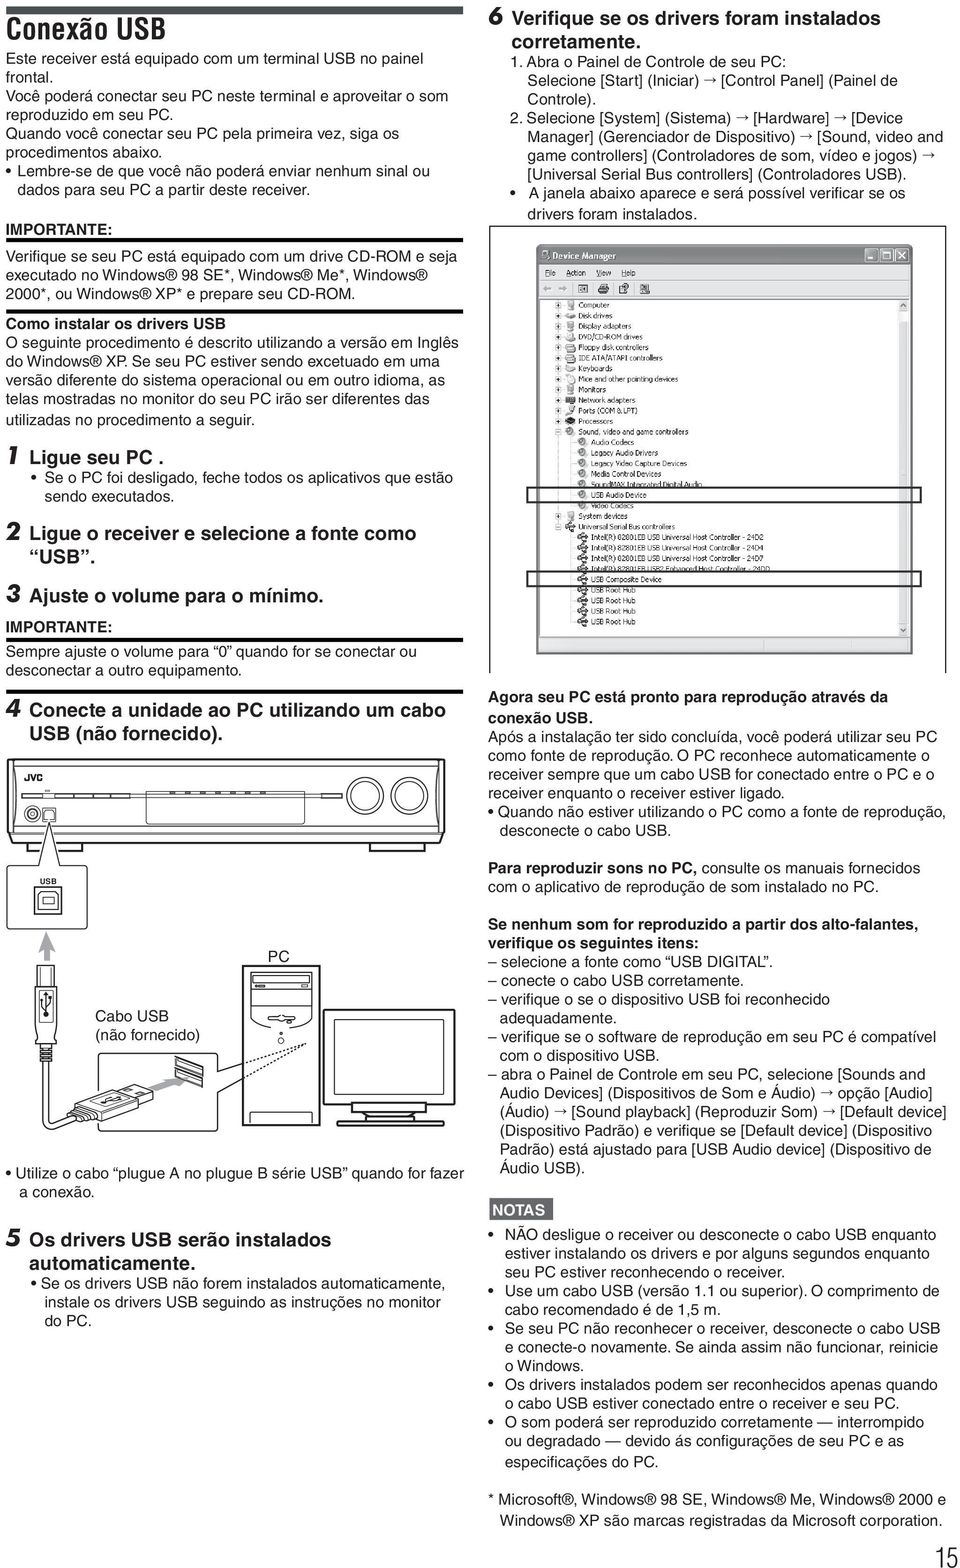 IMPOTANTE: Verifique se seu PC está equipado com um drive CD-OM e seja executado no Windows 98 SE*, Windows Me*, Windows 2000*, ou Windows XP* e prepare seu CD-OM.